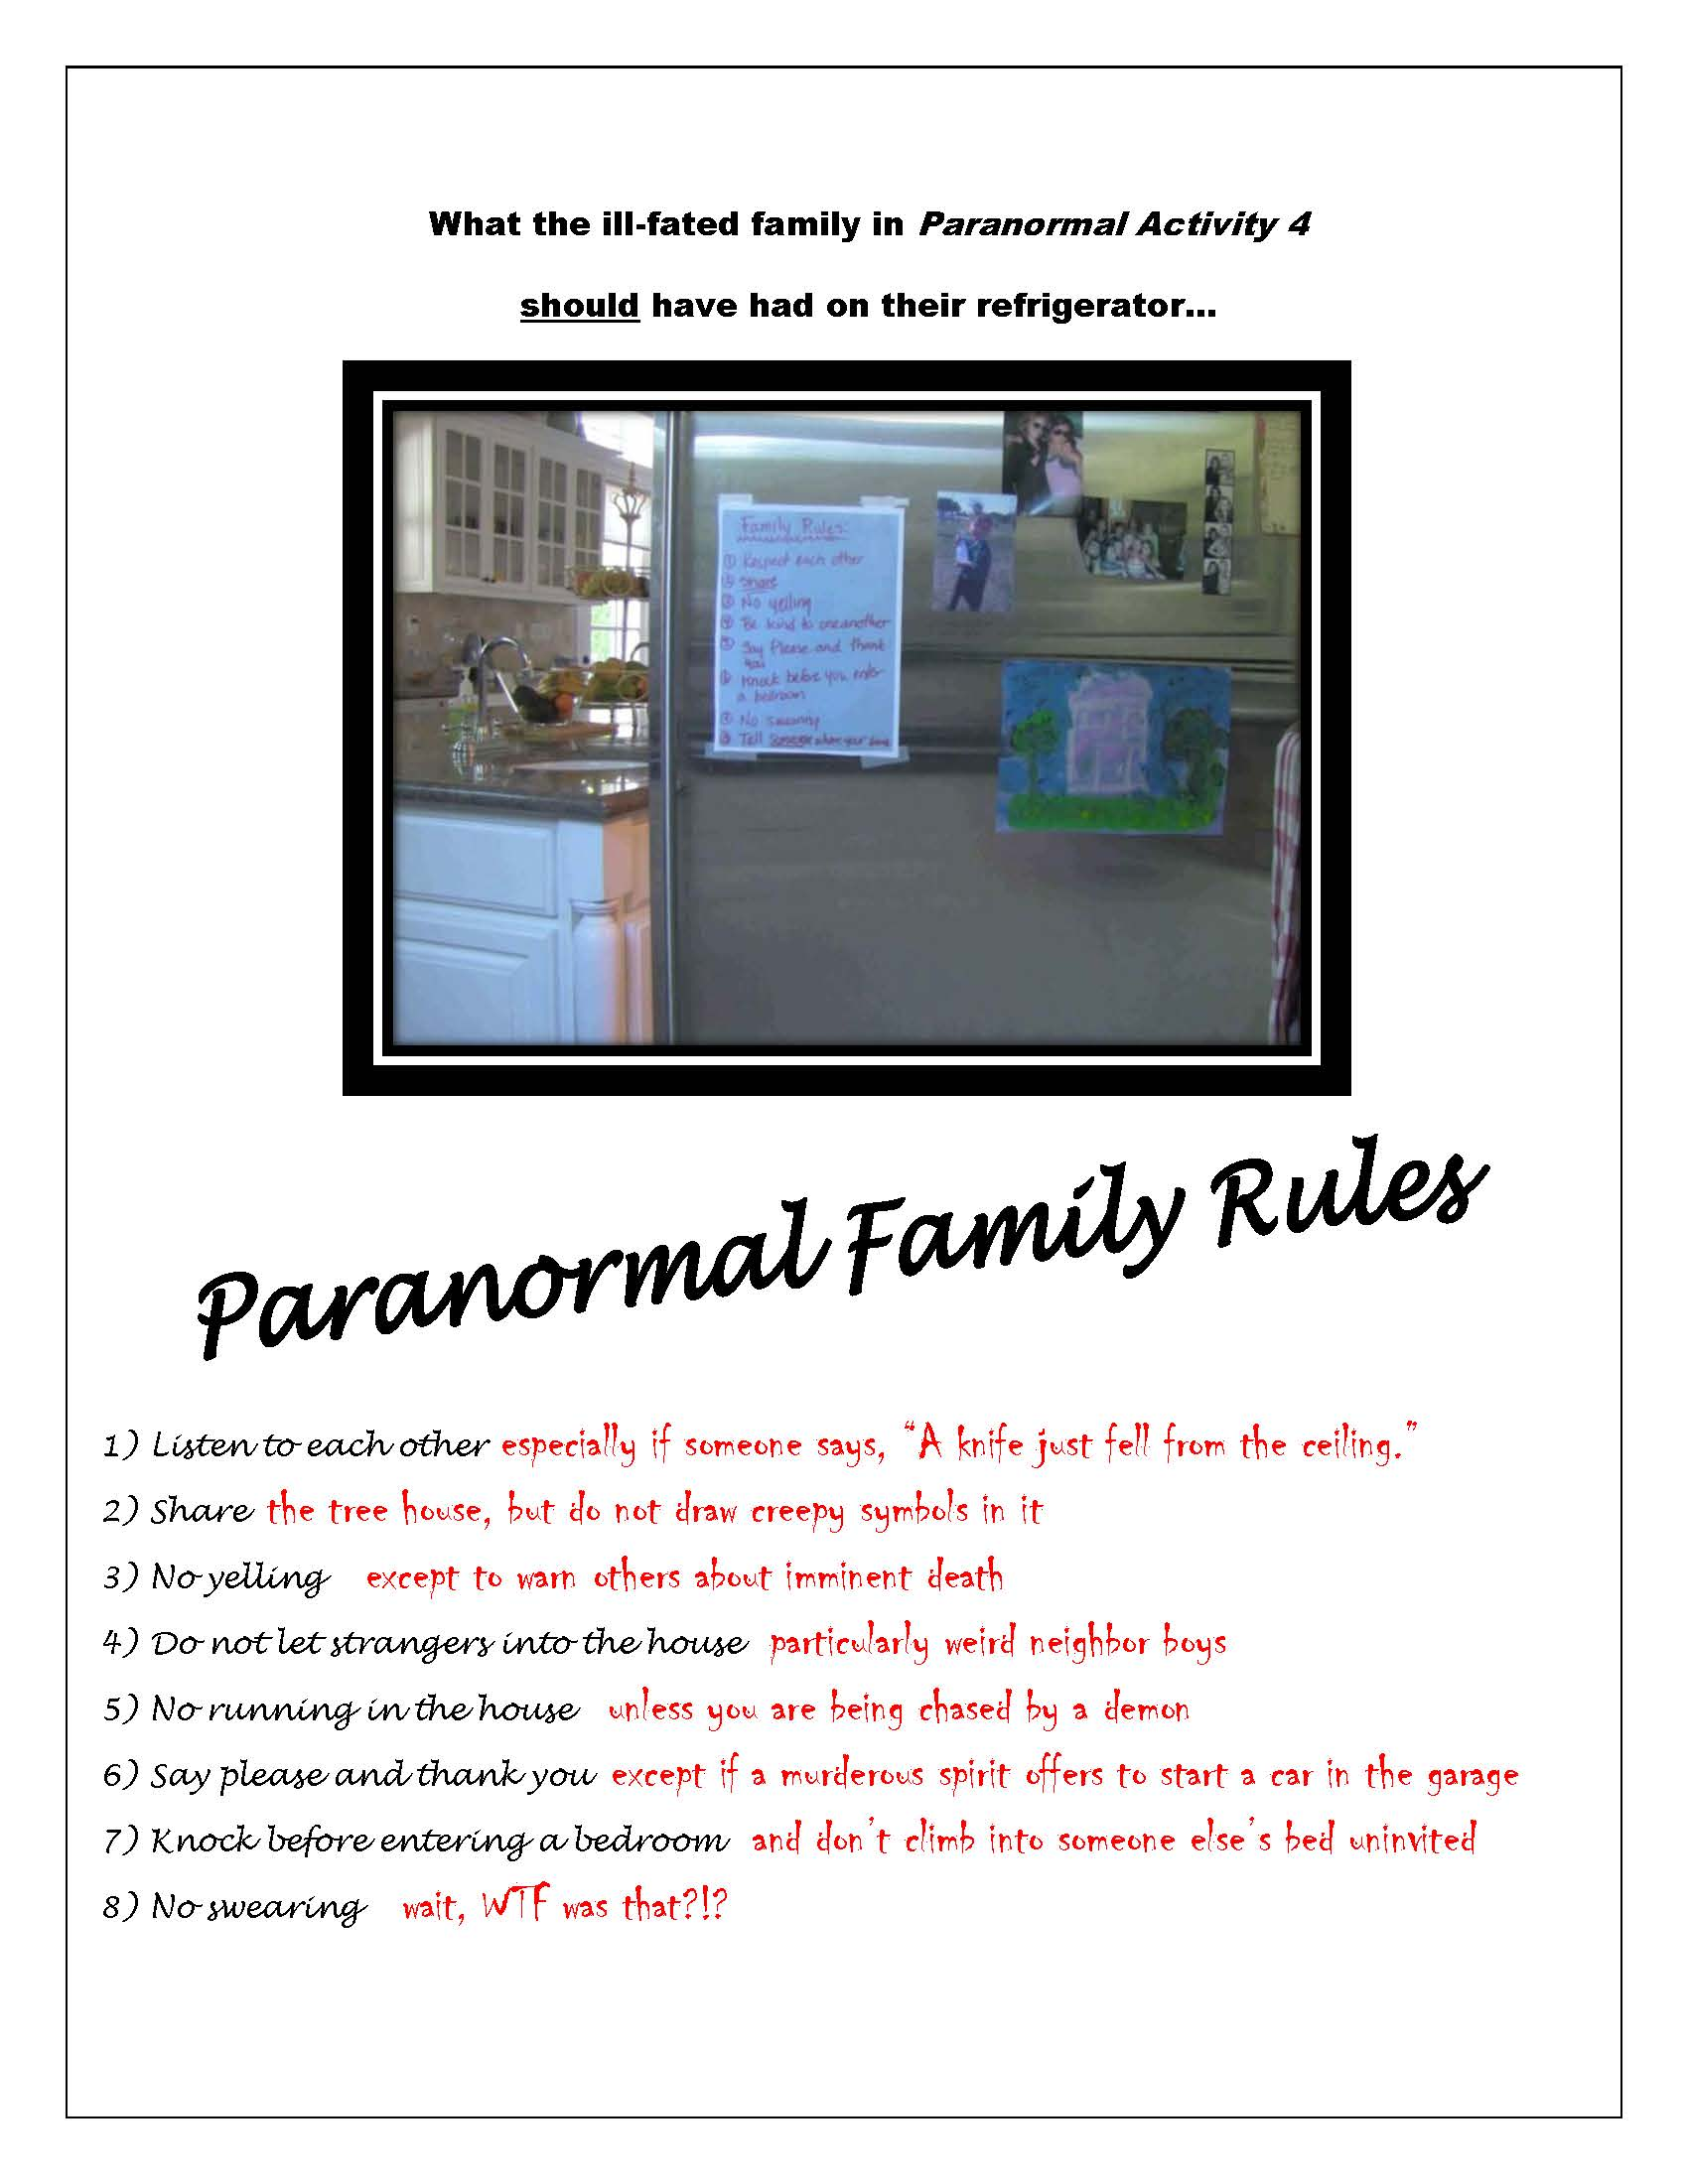 PA Family Rules Paranormal Activity 4 Gives Supernatural House Rules